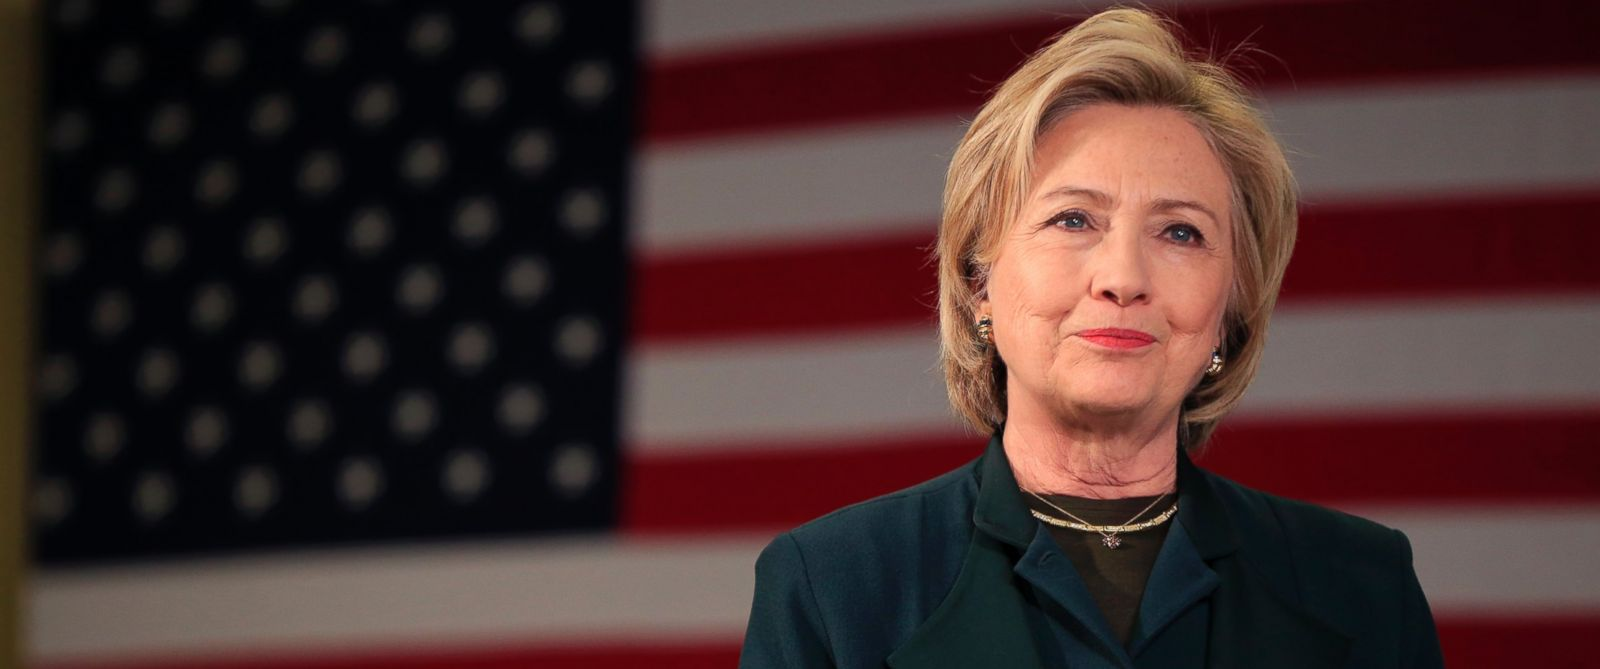 Hillary Clinton smiling with American flag backdrop